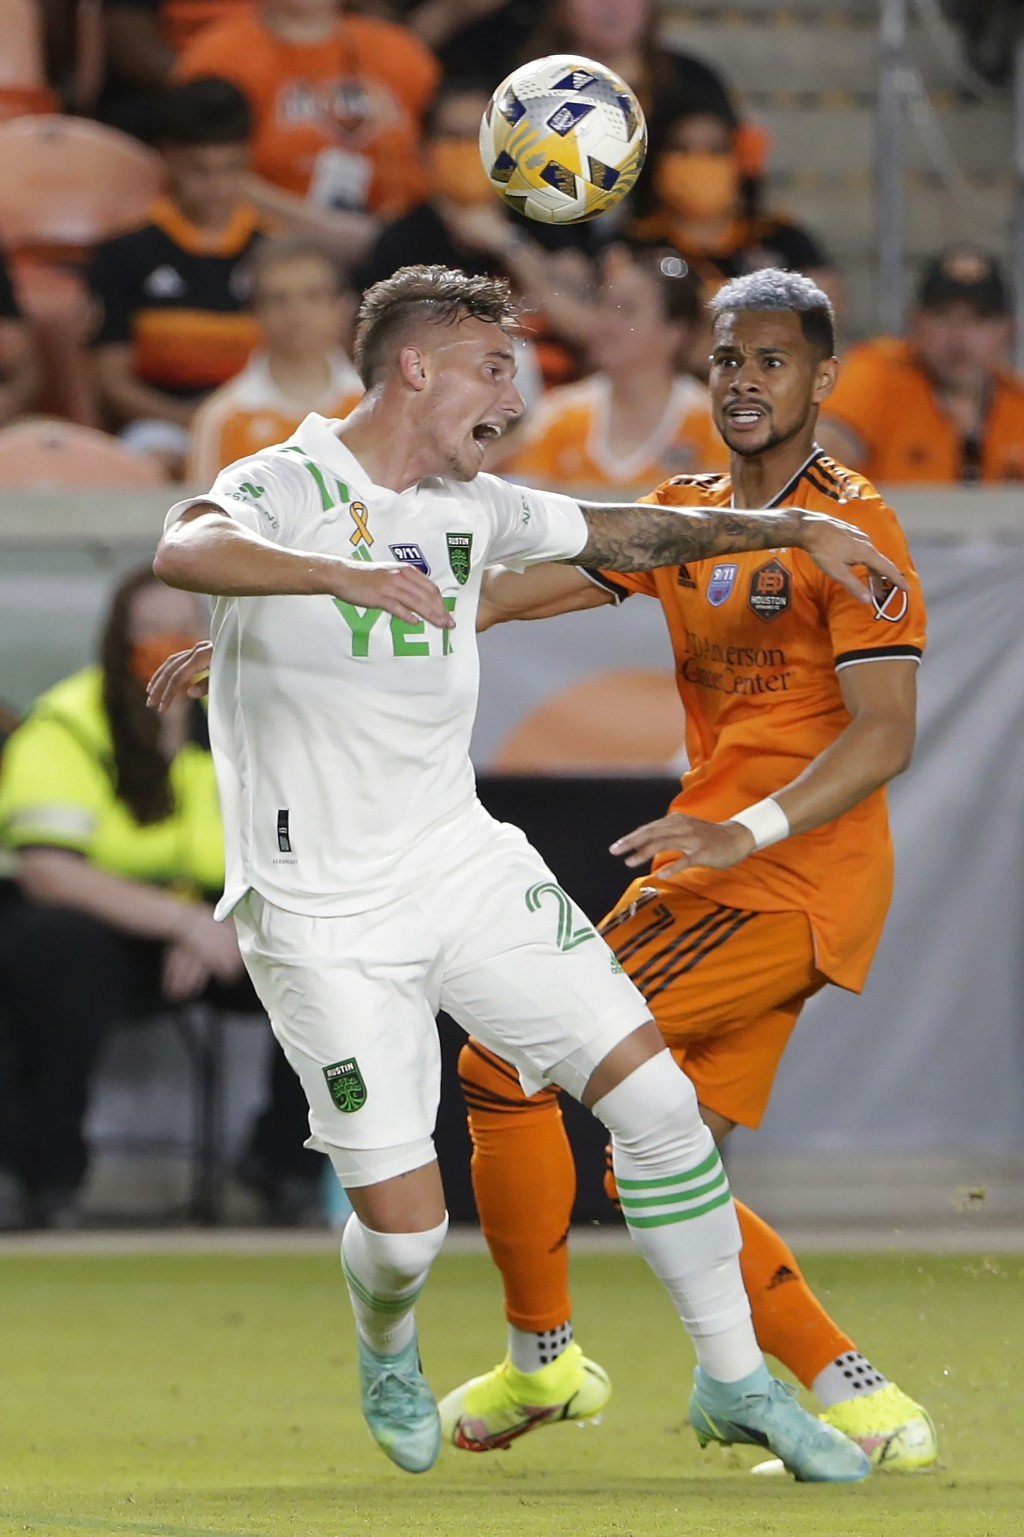 Austin FC defender Zan Kolmanic, left, headers the ball in front of Houston Dynamo forward Ariel Lassiter, right, during the second half of an MLS soc...